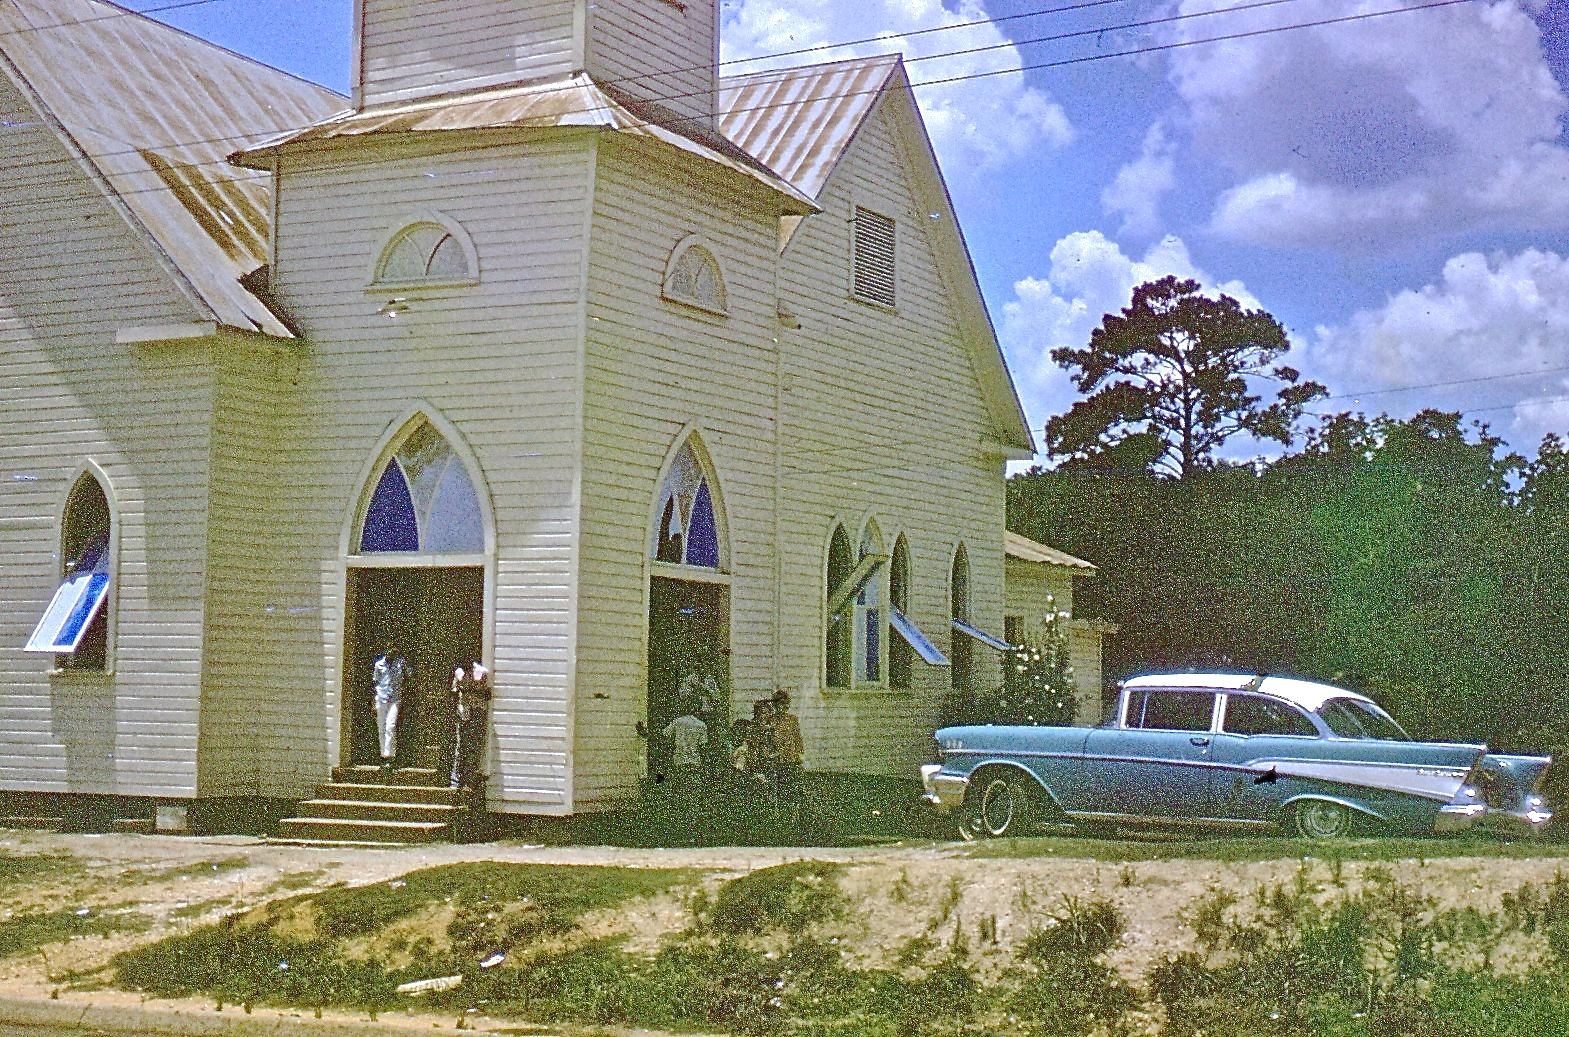 Alabama wilcox county catherine - Antioch Baptist Church The Morning After It Was Shot Up By The Klan June 1965